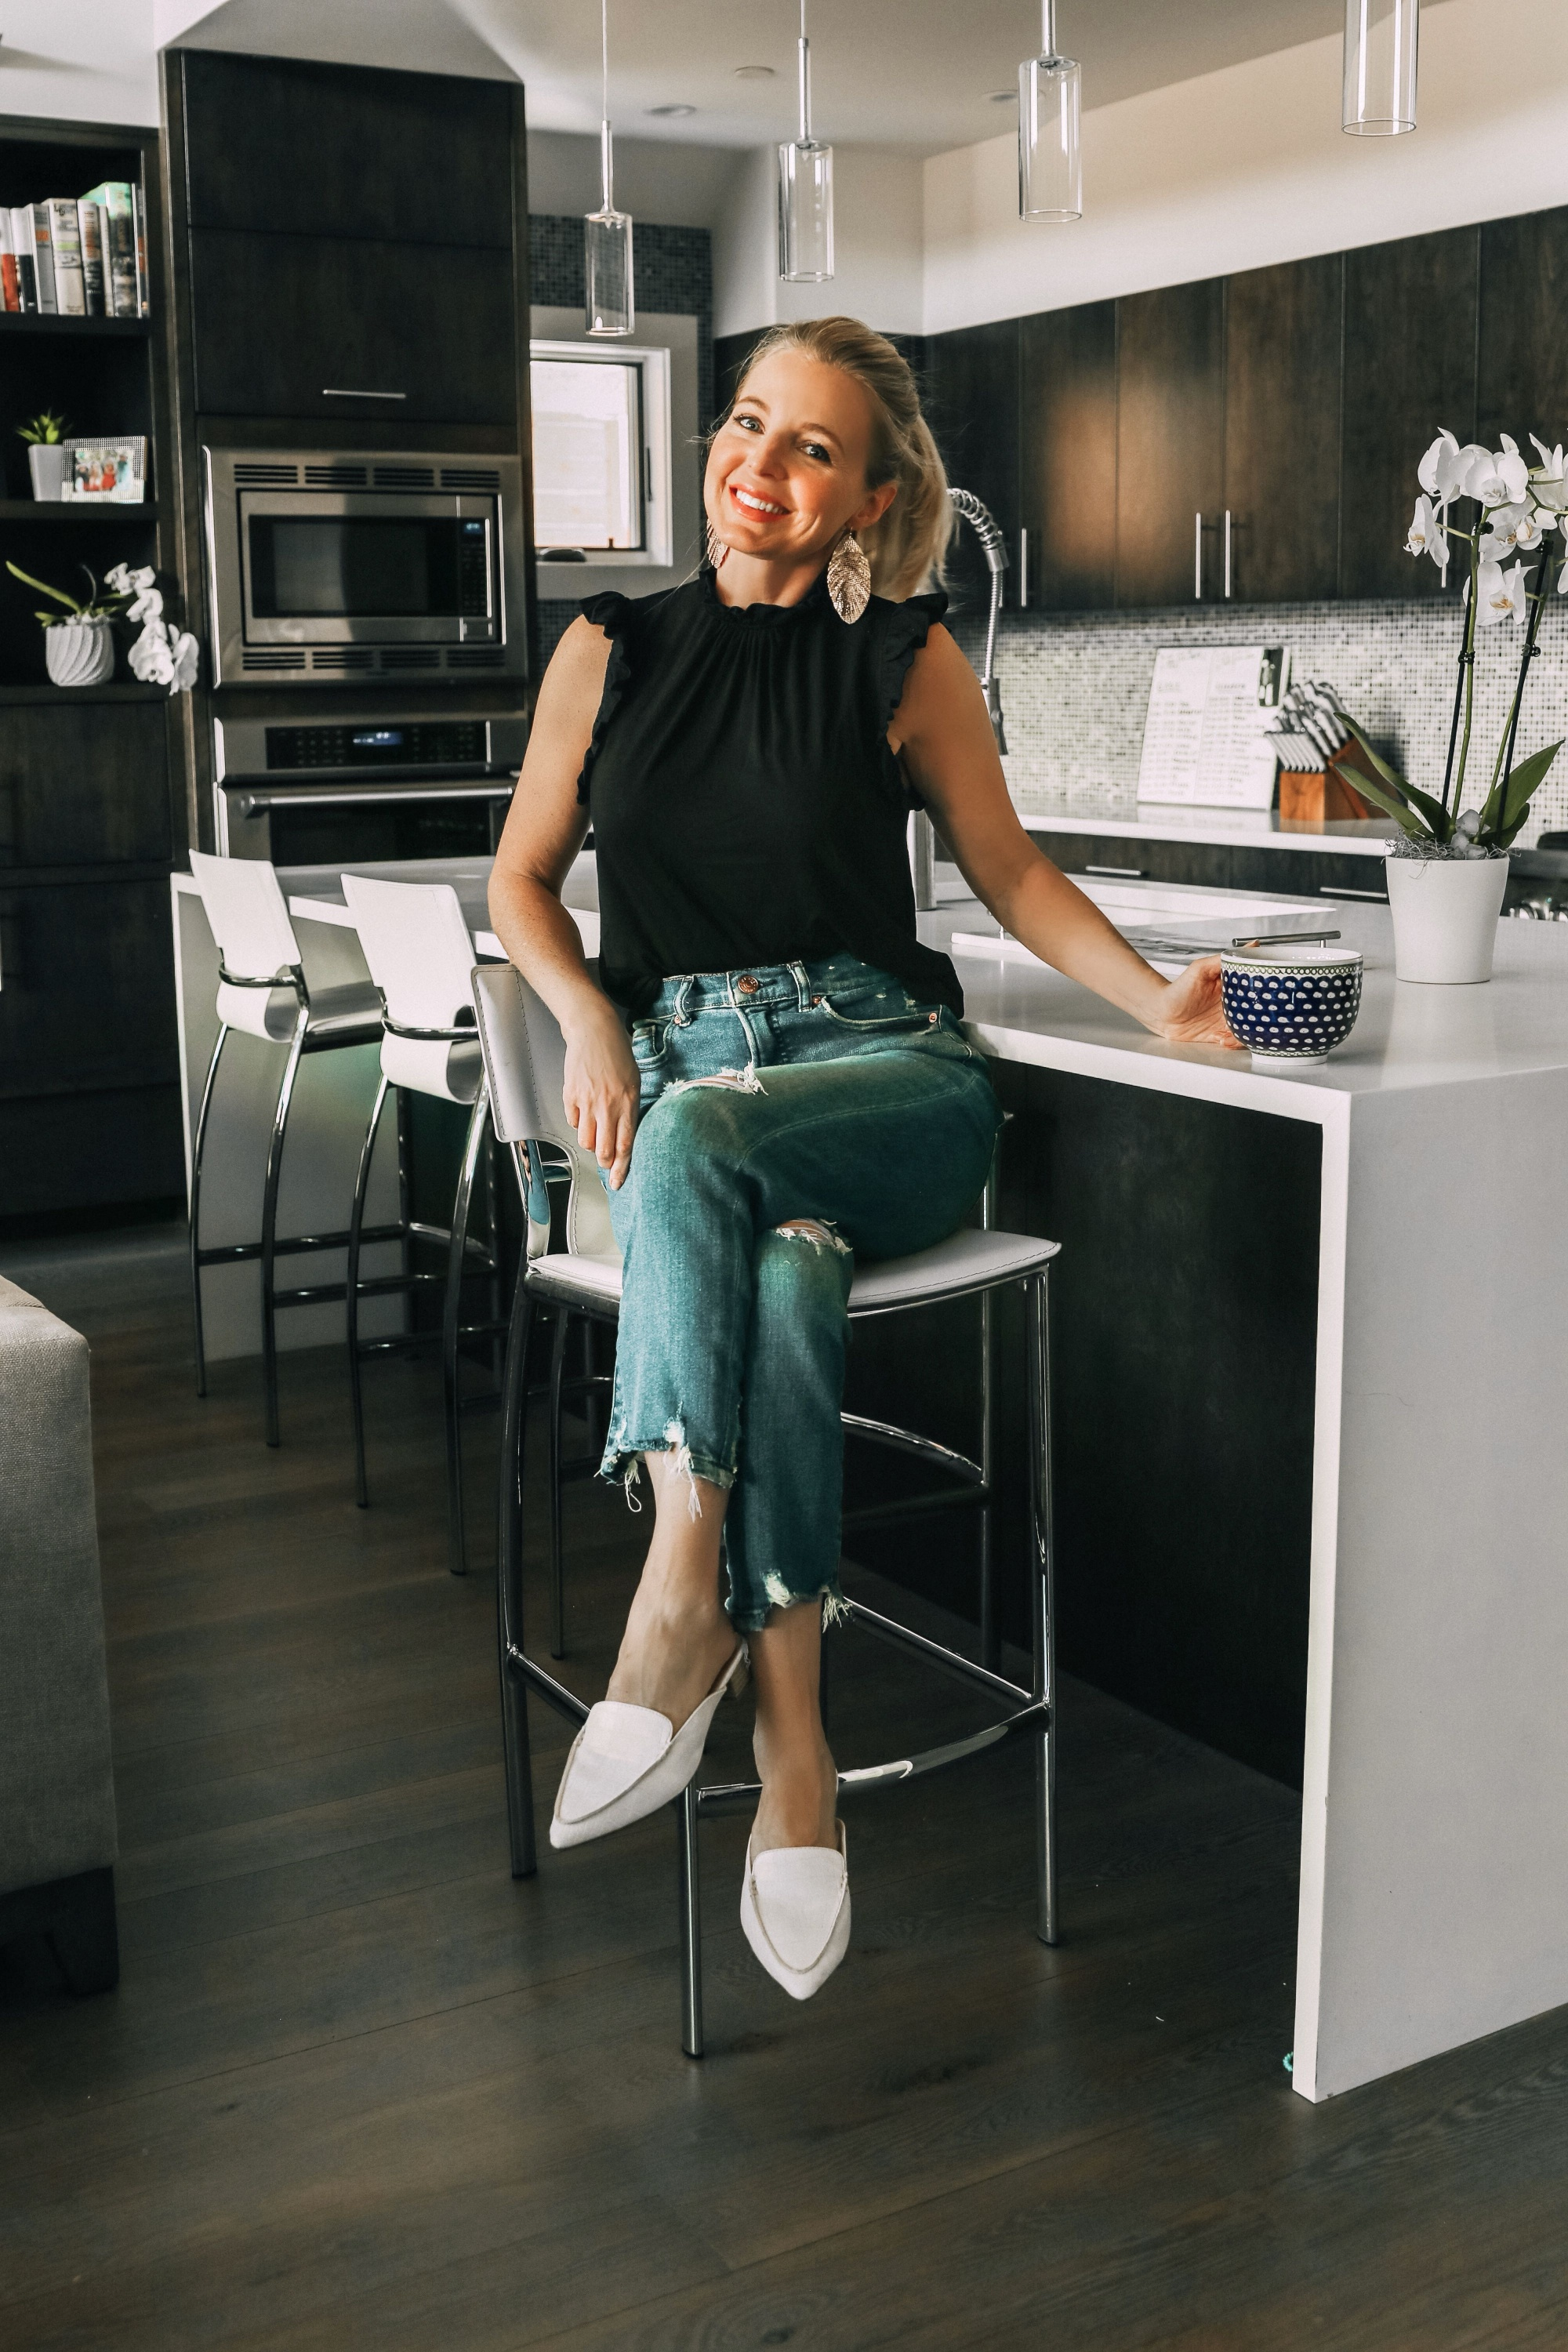 Work from home outfits that are affordable from Express featuring high rise distressed mom jeans, white loafers, black mock neck ruffle cotton top and lightweight leaf earrings